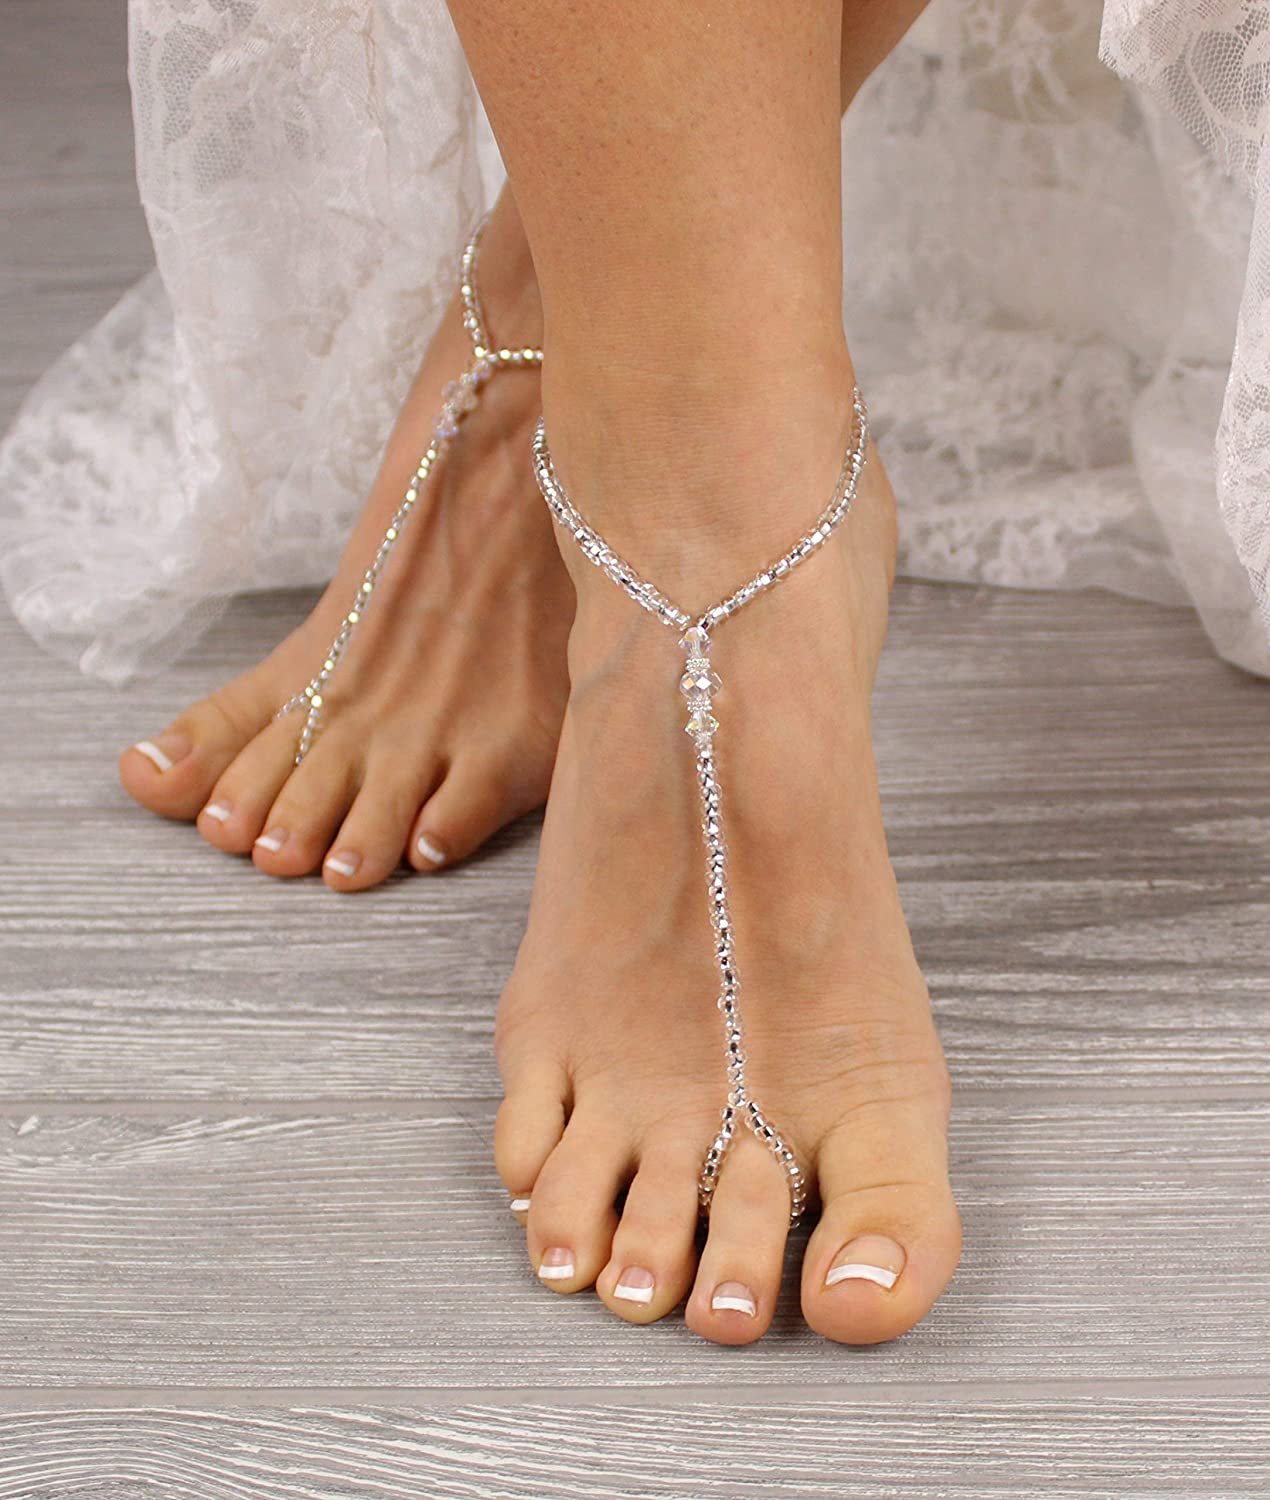 Beach wedding sandals bridal barefoot crocheted sandals Dainty summer anklet foot jewelry legwear white lace bridesmaid beach anklets